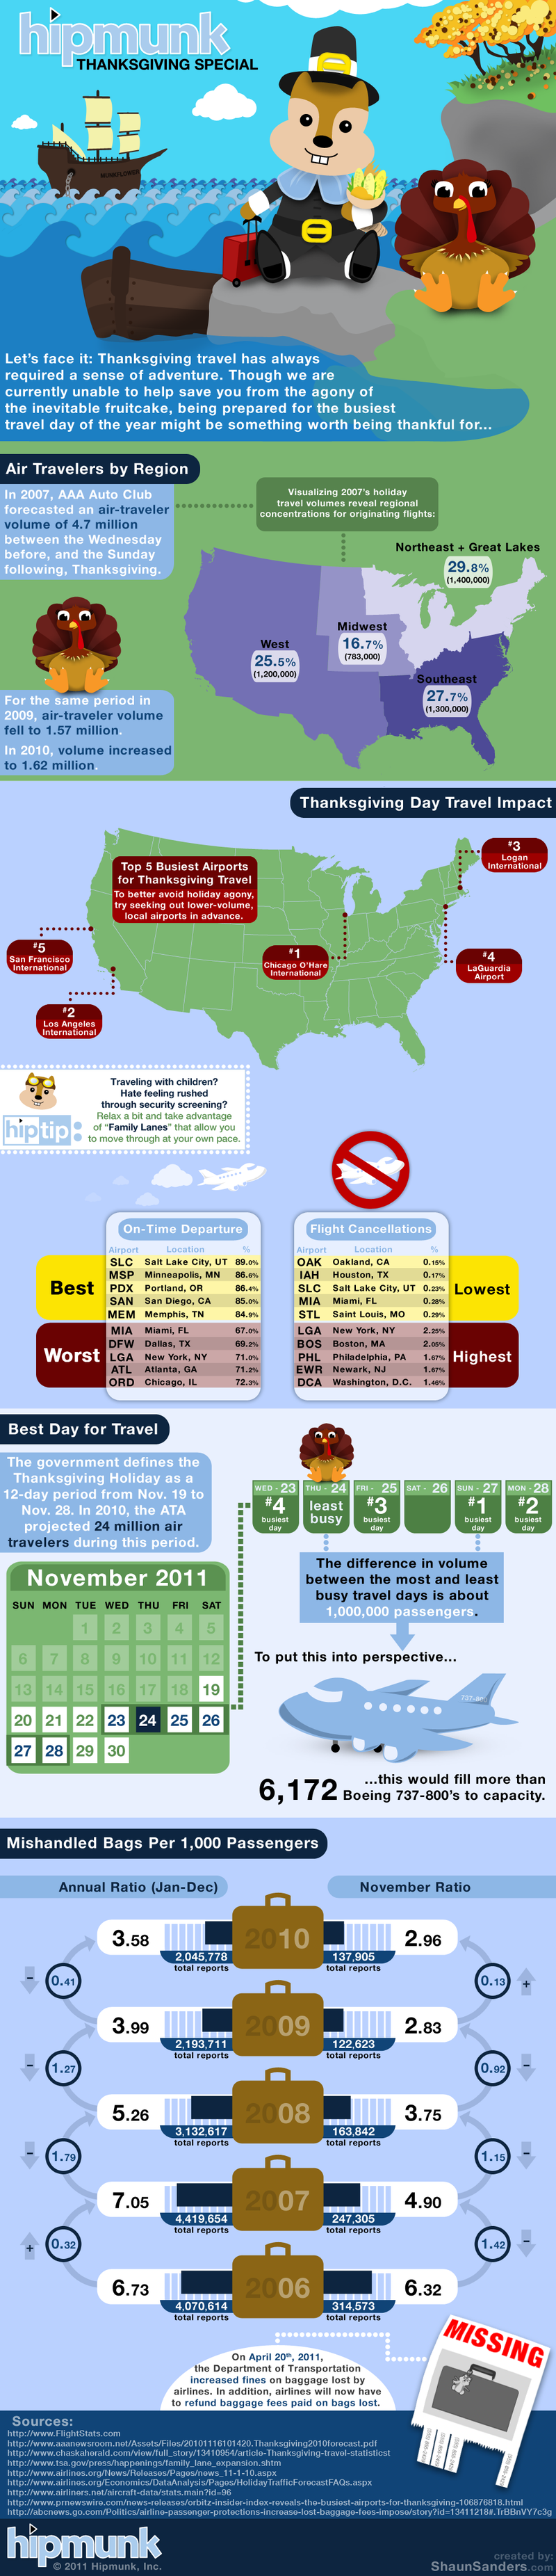 Use Statistics to Pick Your Best Thanksgiving Travel Options